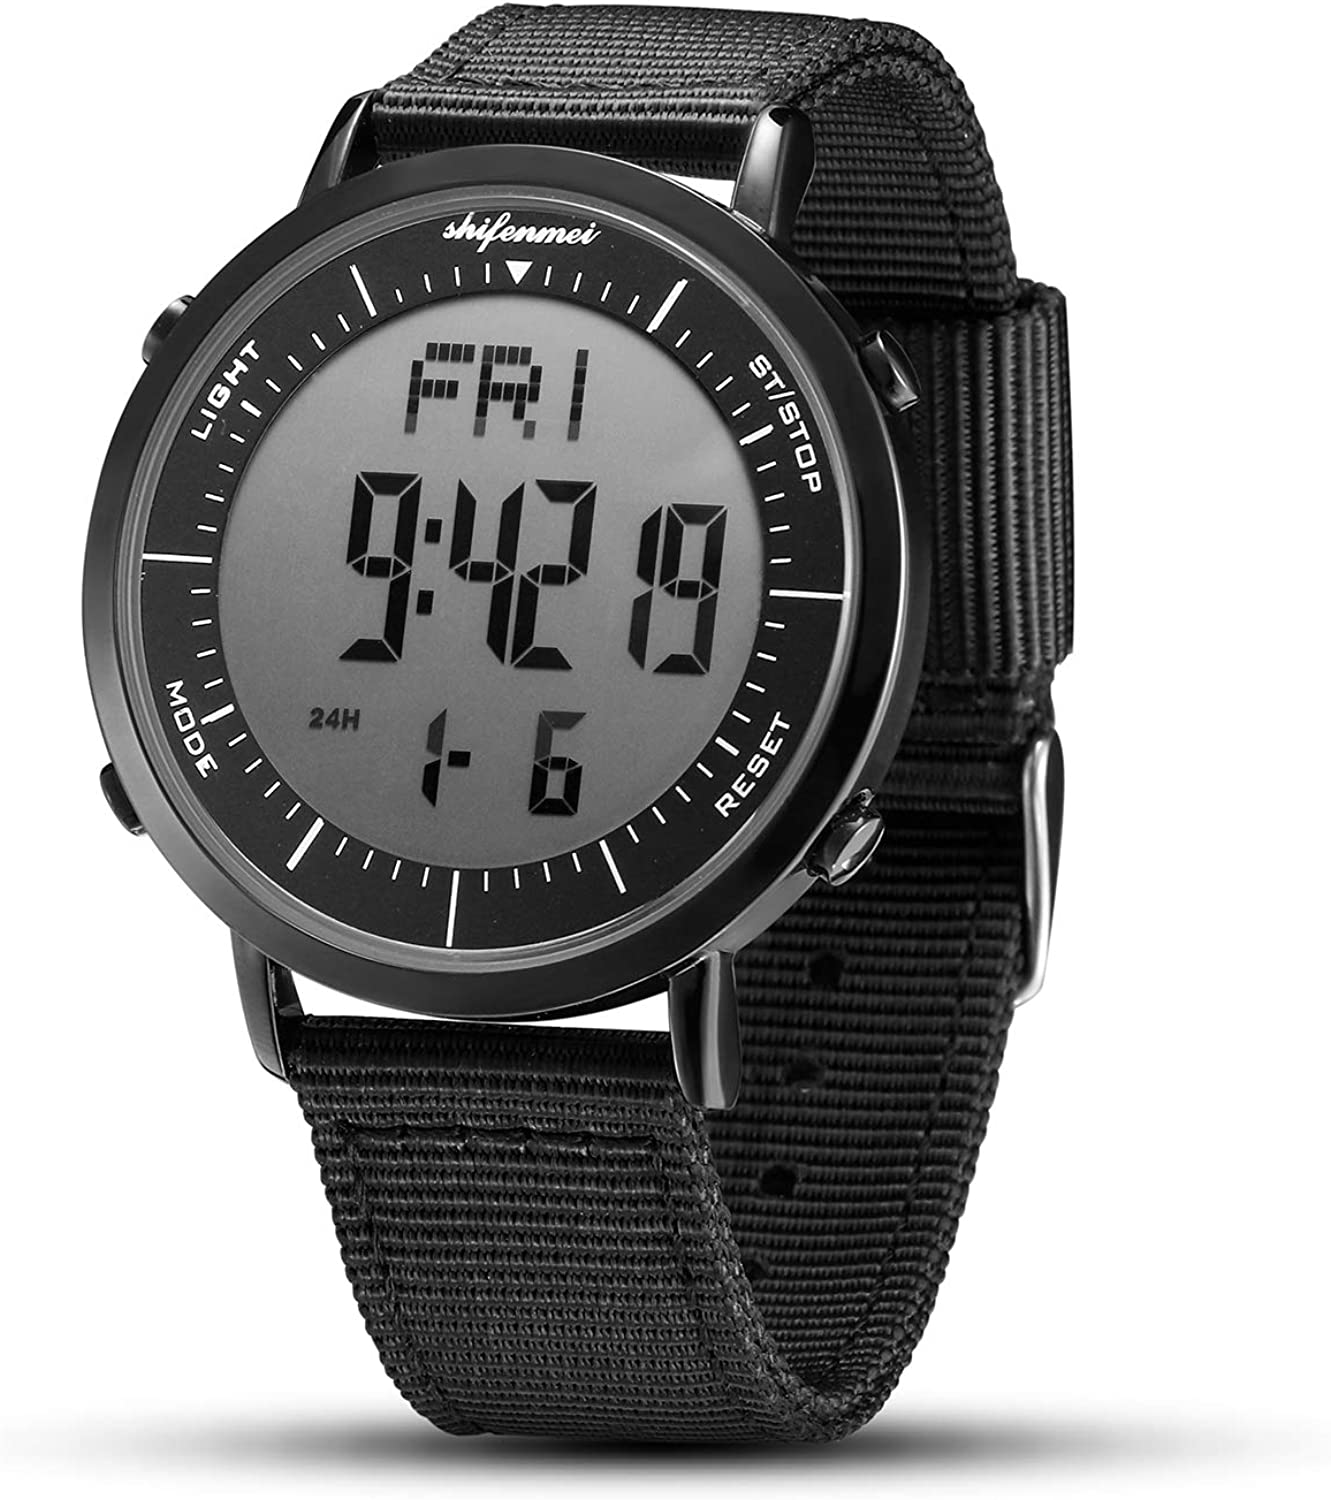 Digital Watches, shifenmei Digital Sports Watch Daily Alarm Hourly Chime Stopwatch 12 24H Date EL Backlight Military Outdoor Waterproof Multifunction Large Face Watches for Men Women Kids